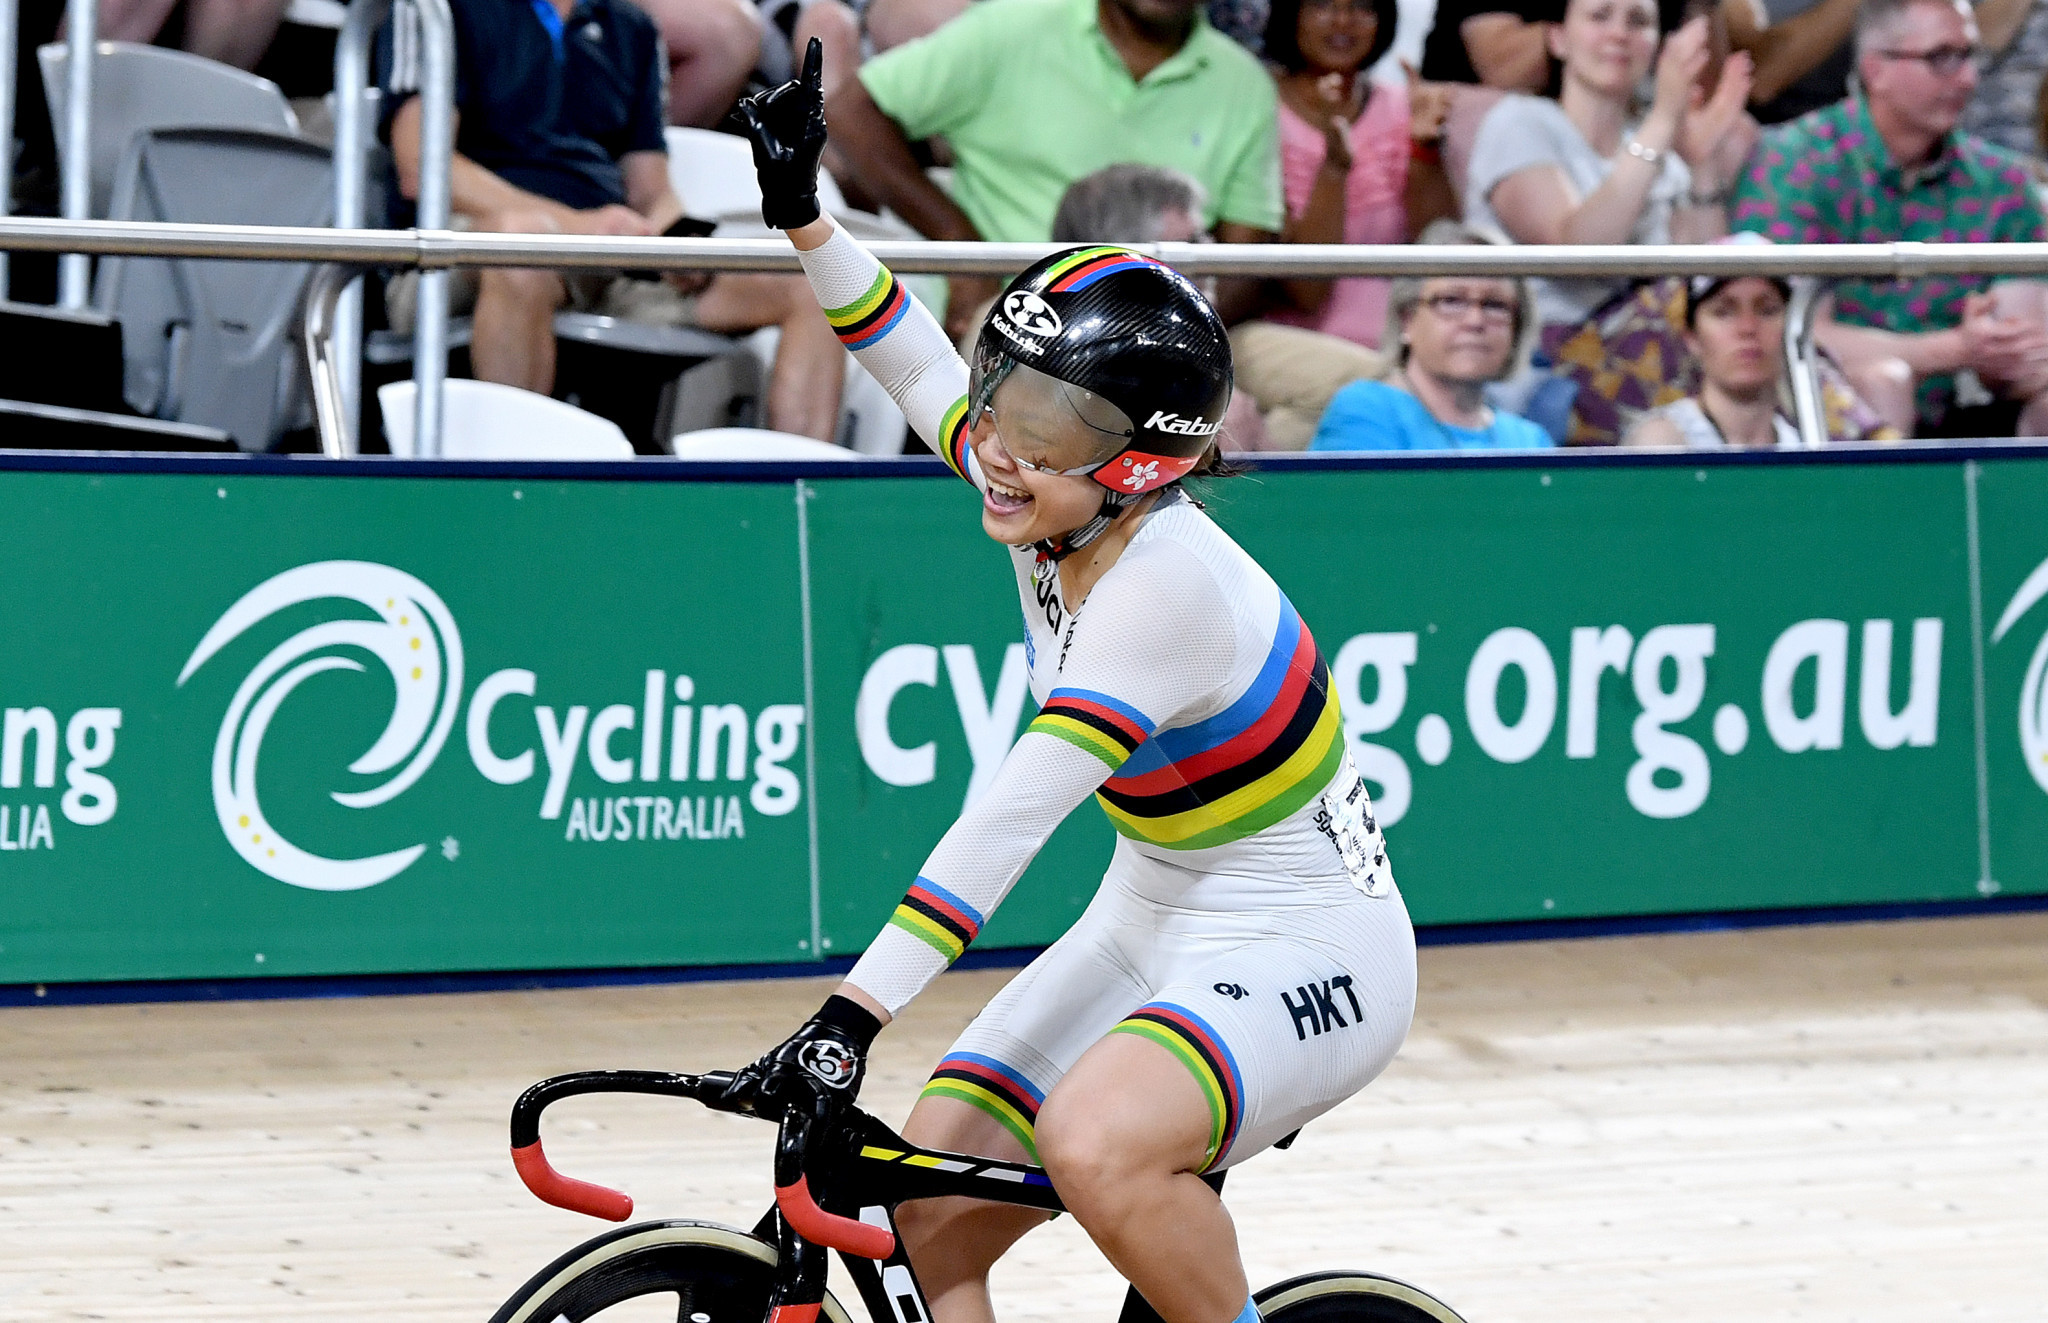 Lee overcomes home favourite at UCI Track Cycling World Cup in Brisbane